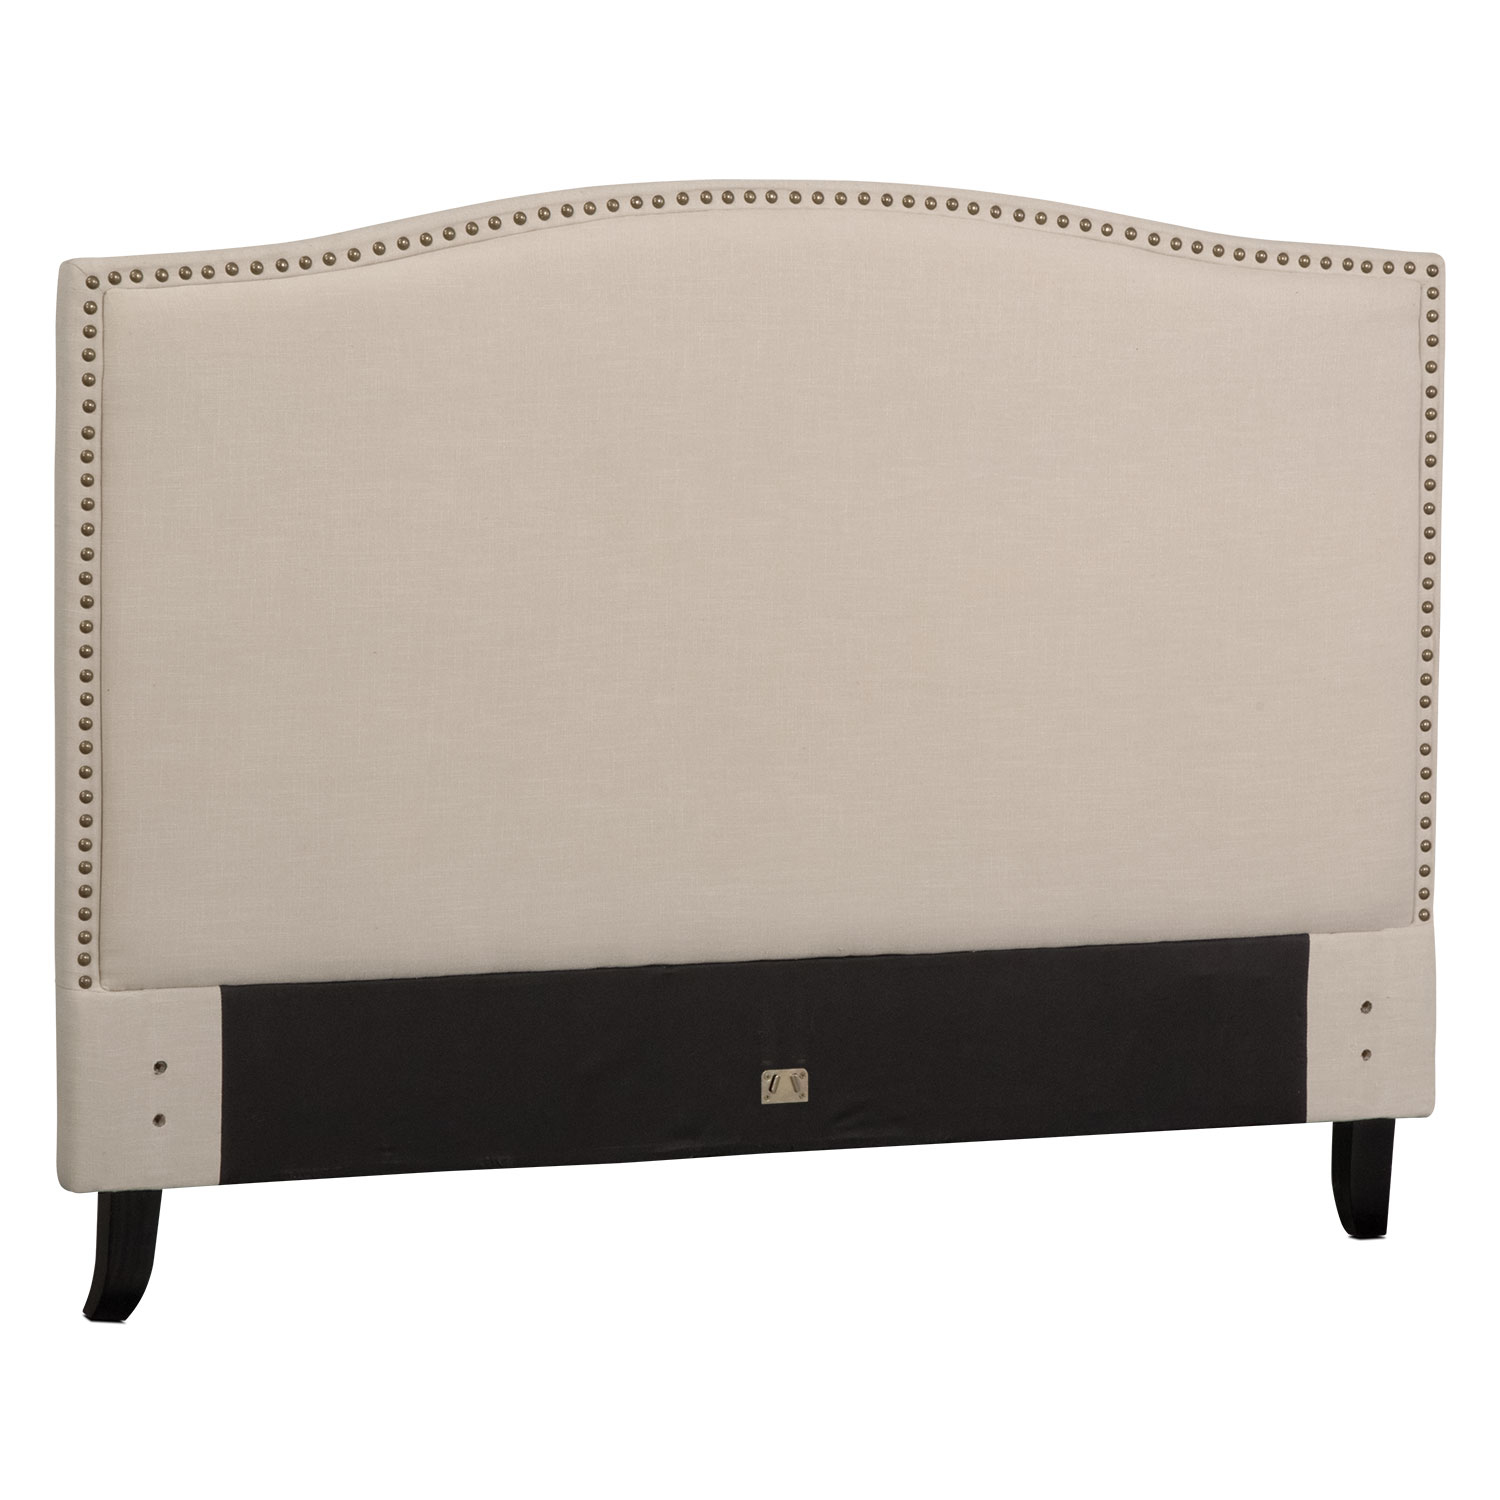 Aubrey King Upholstered Headboard - Sand